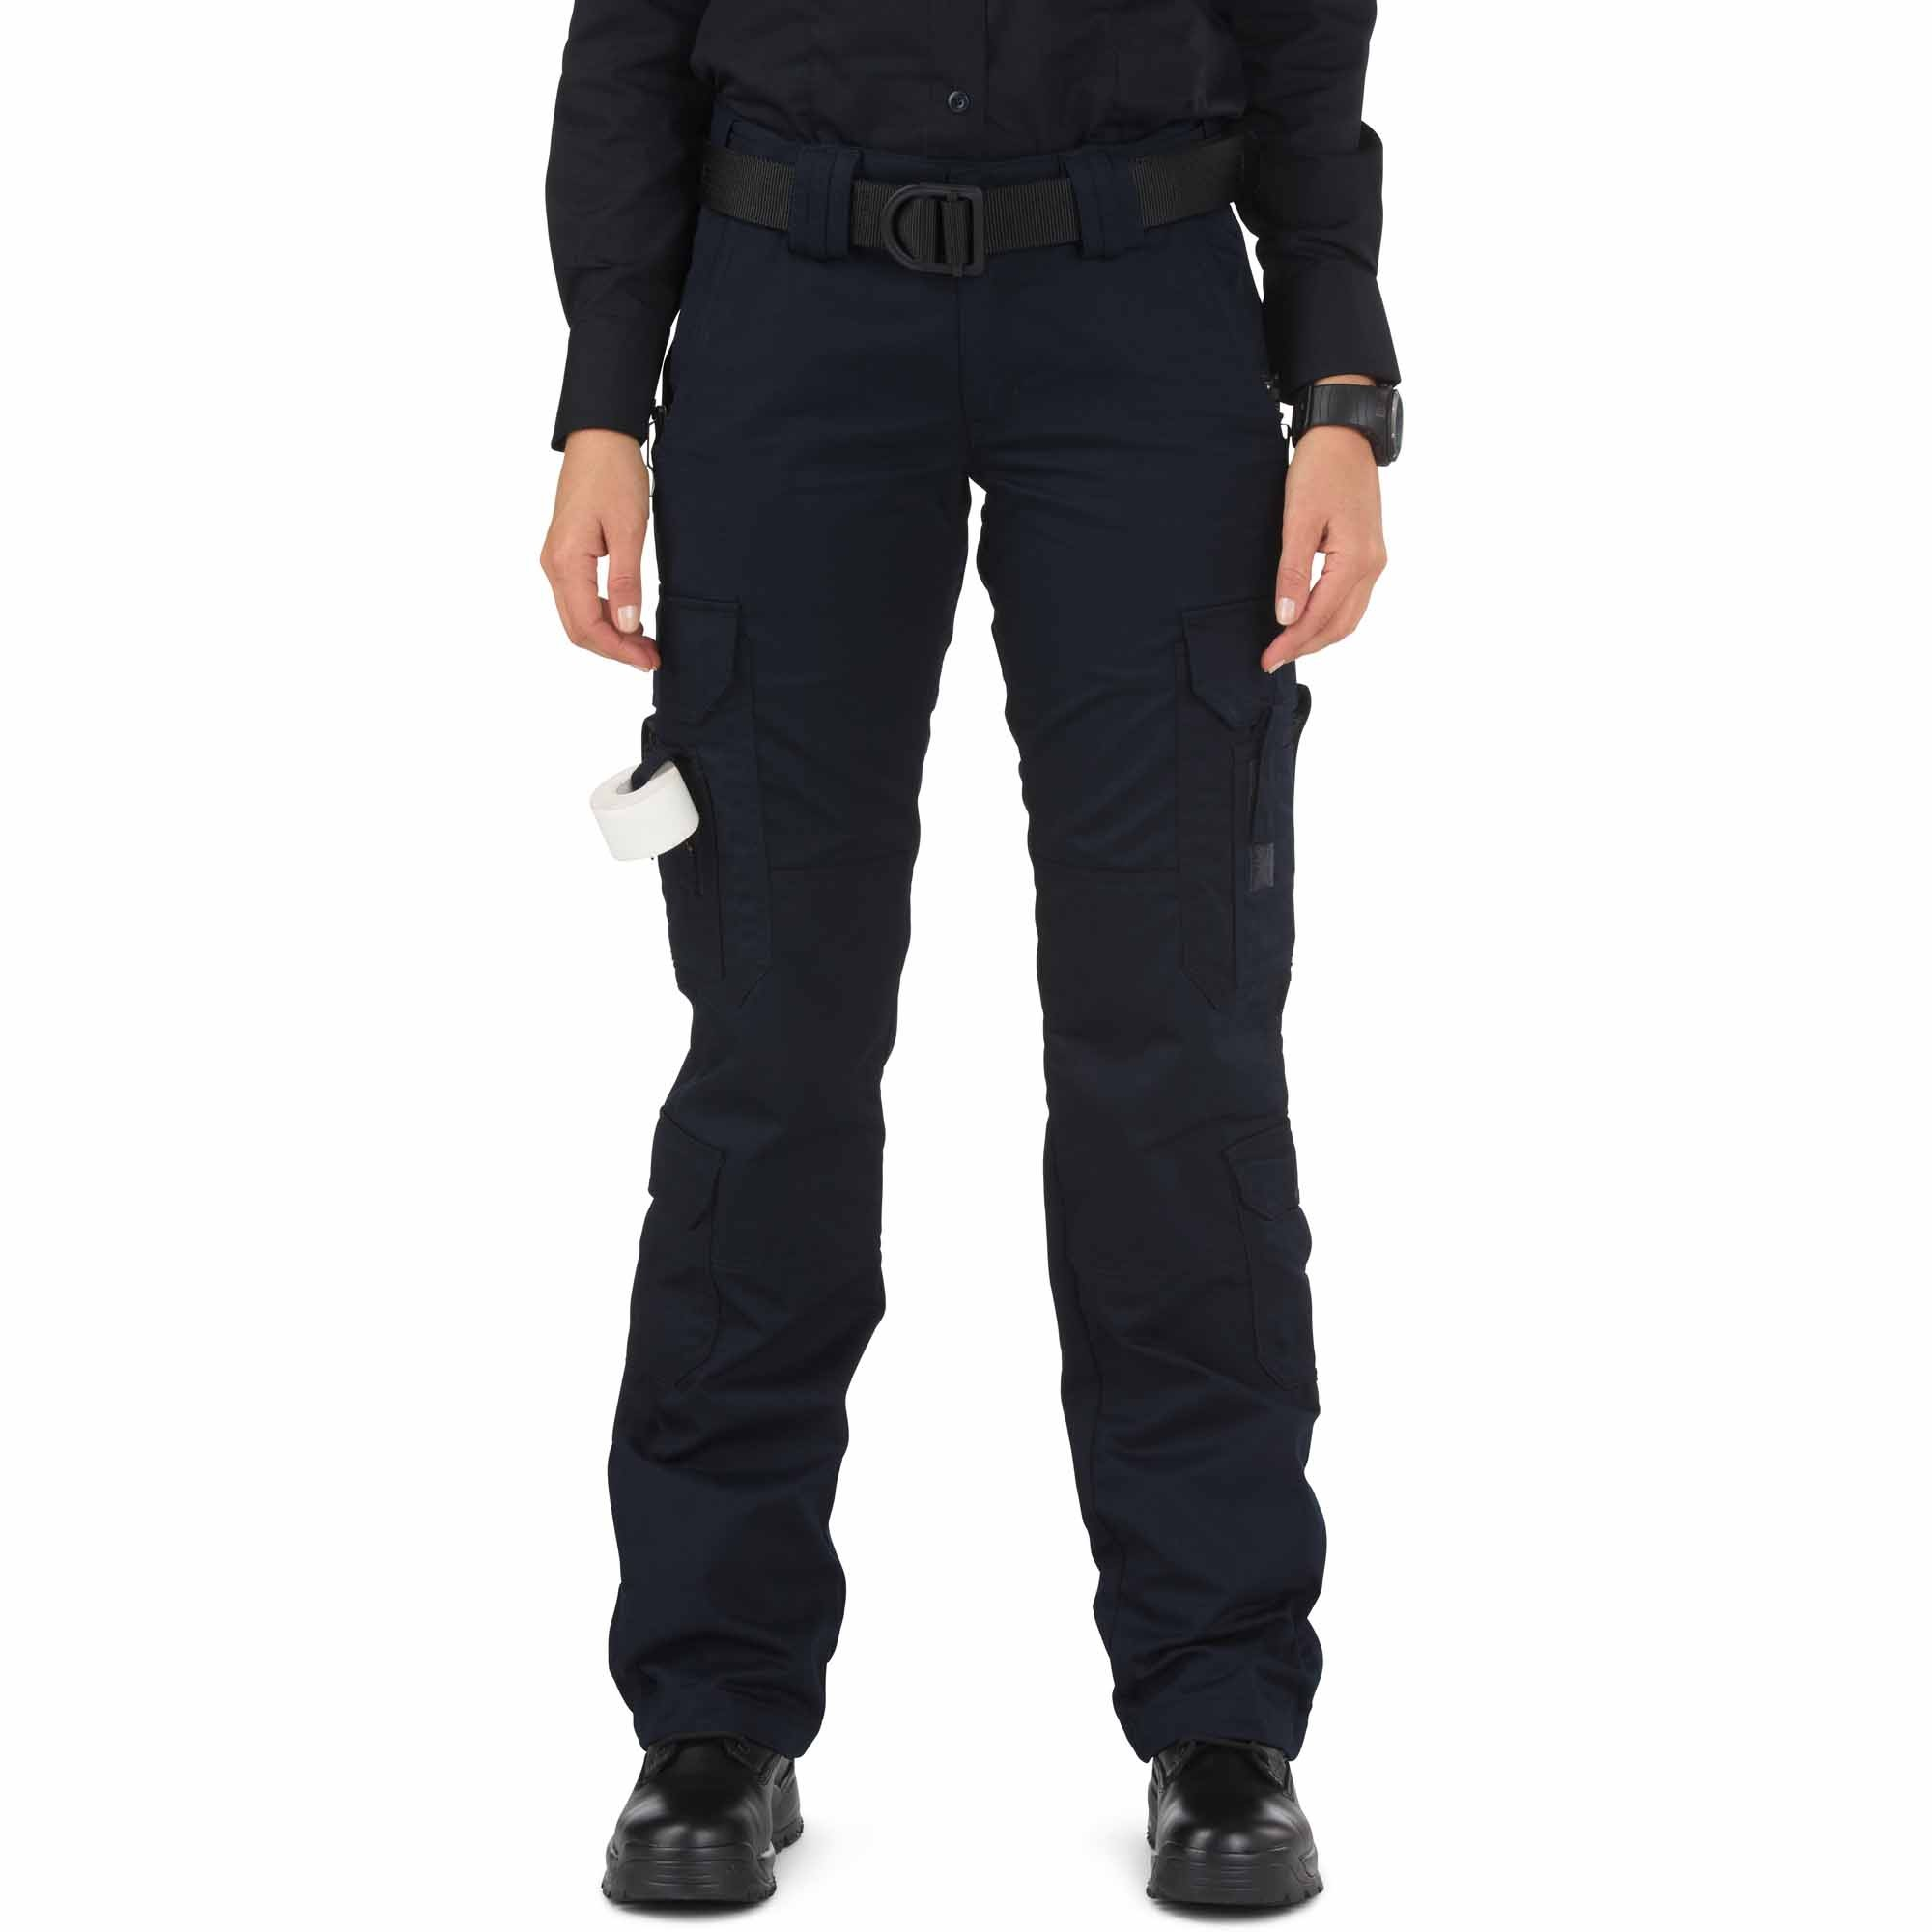 5.11 Womens EMS Pant PC Twill 64301